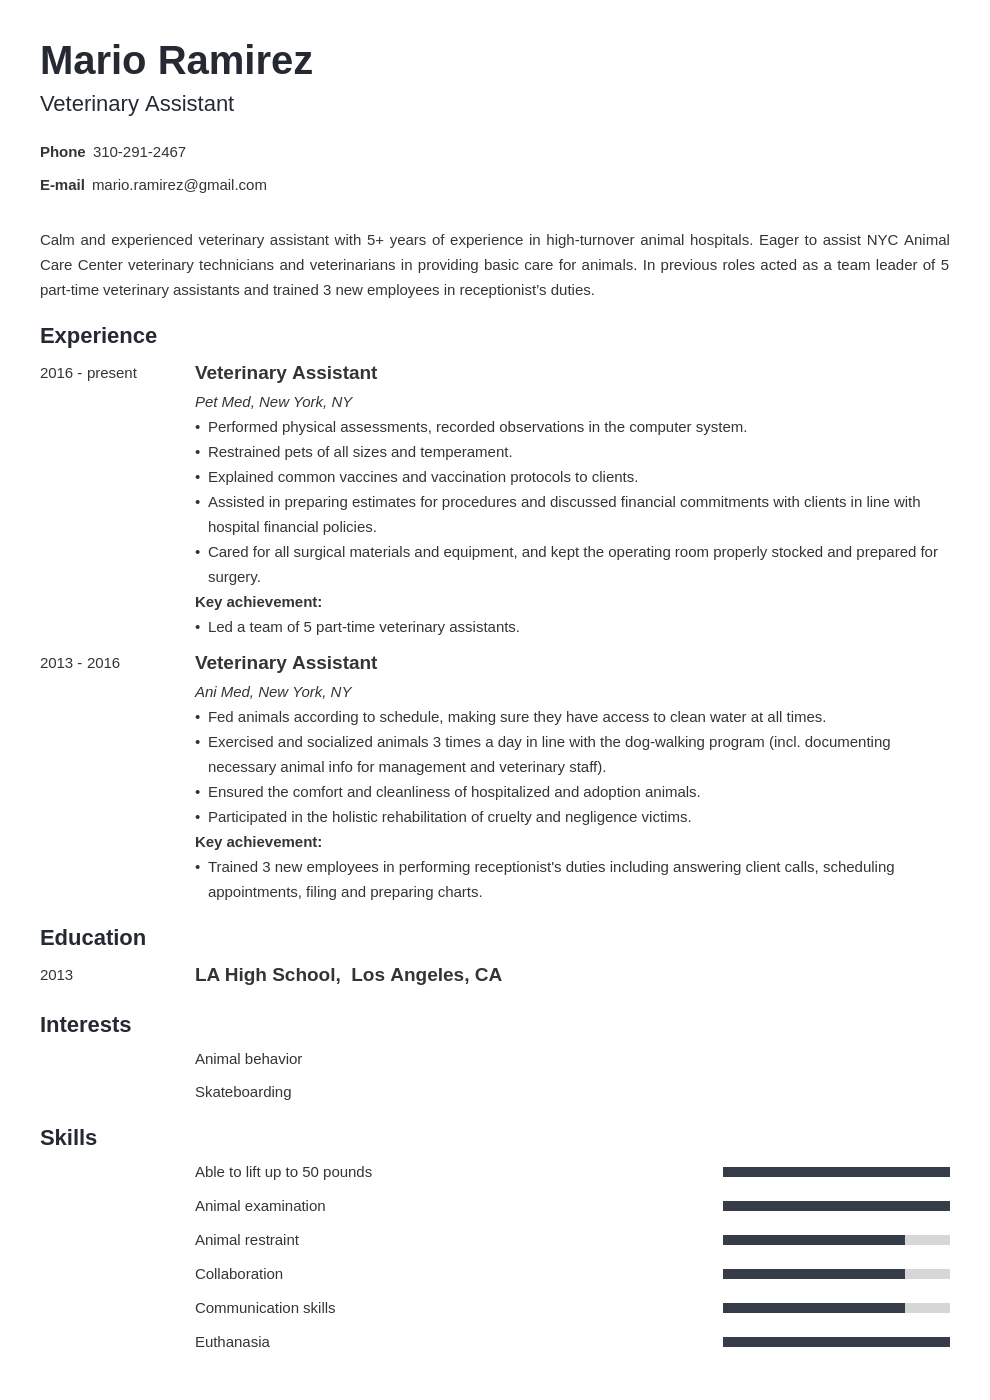 Veterinary Assistant Resume Example Template Minimo Resume Examples Resume Cover Letter Examples Job Resume Examples